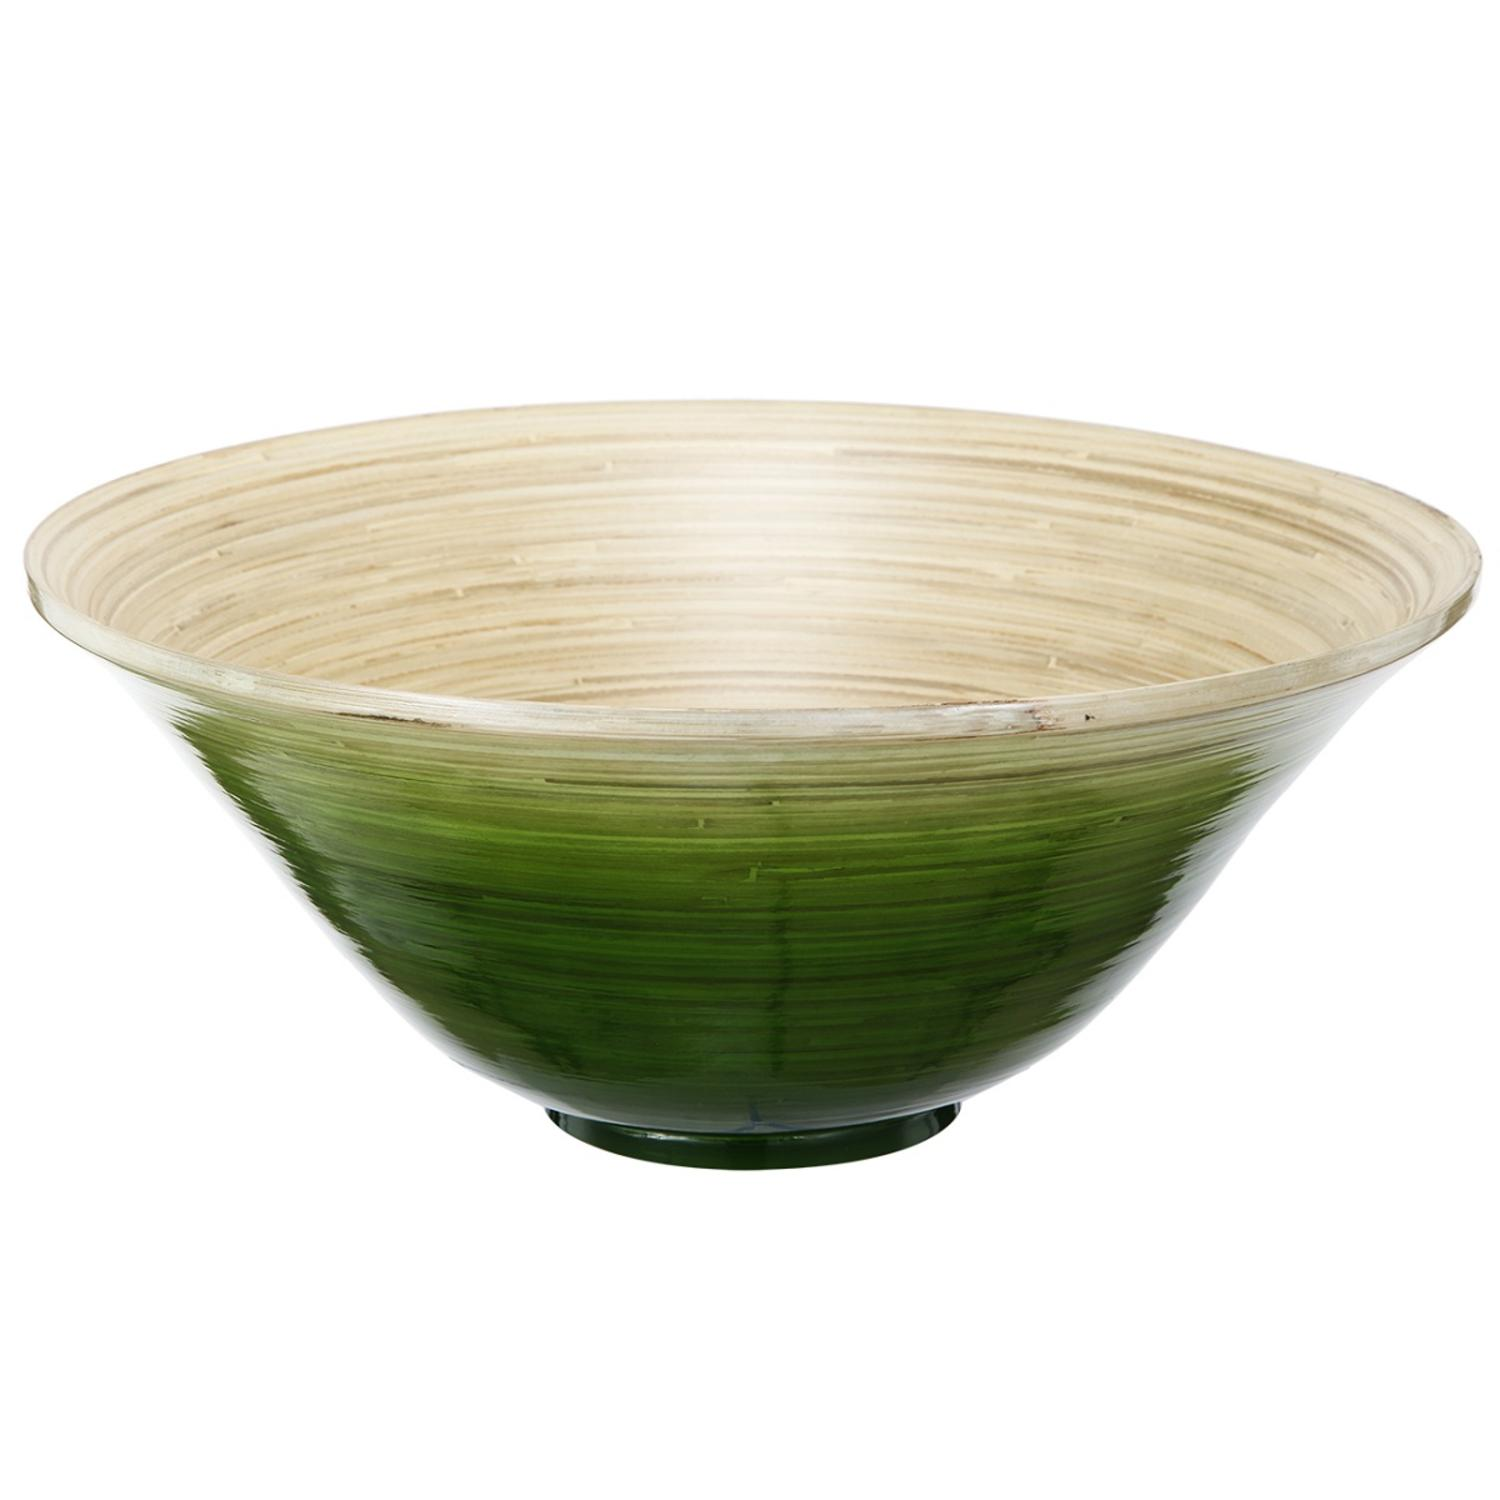 """15.75"""" Green and Tan Decorative Ombre Dynasty Bamboo Bowl by A & B Home"""